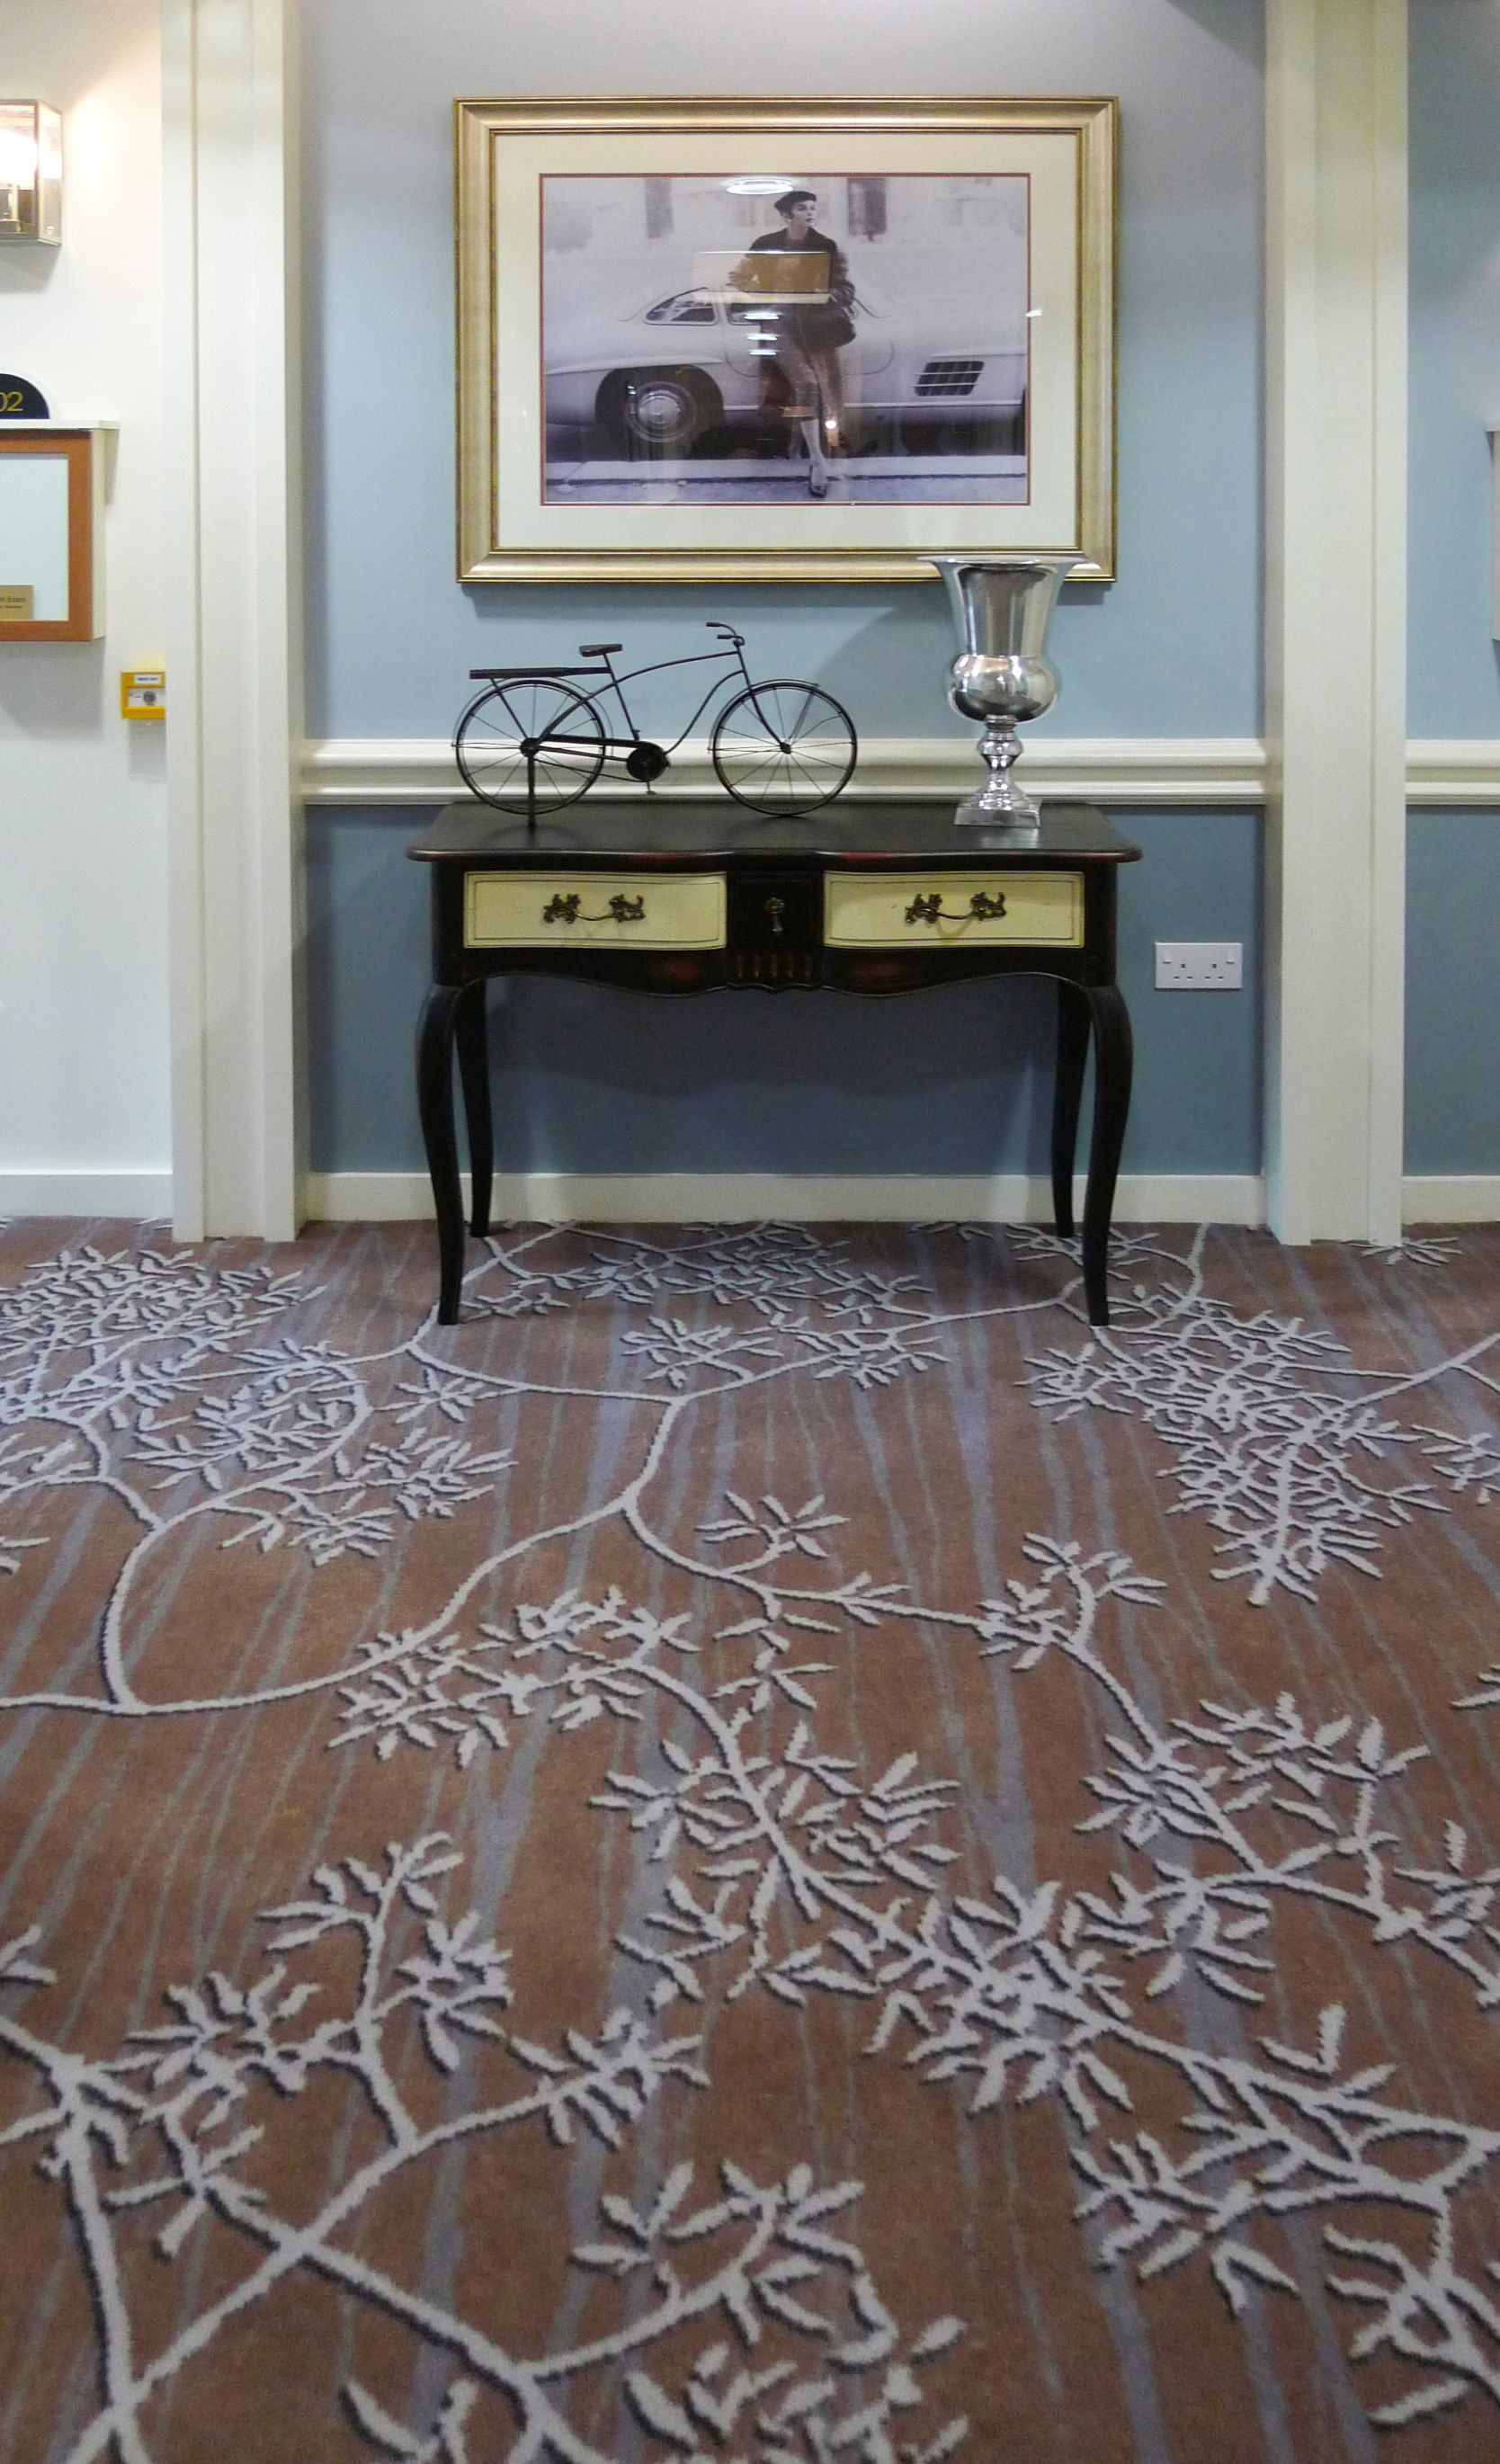 Axminster Carpet Installation In The Beeches Care Home In